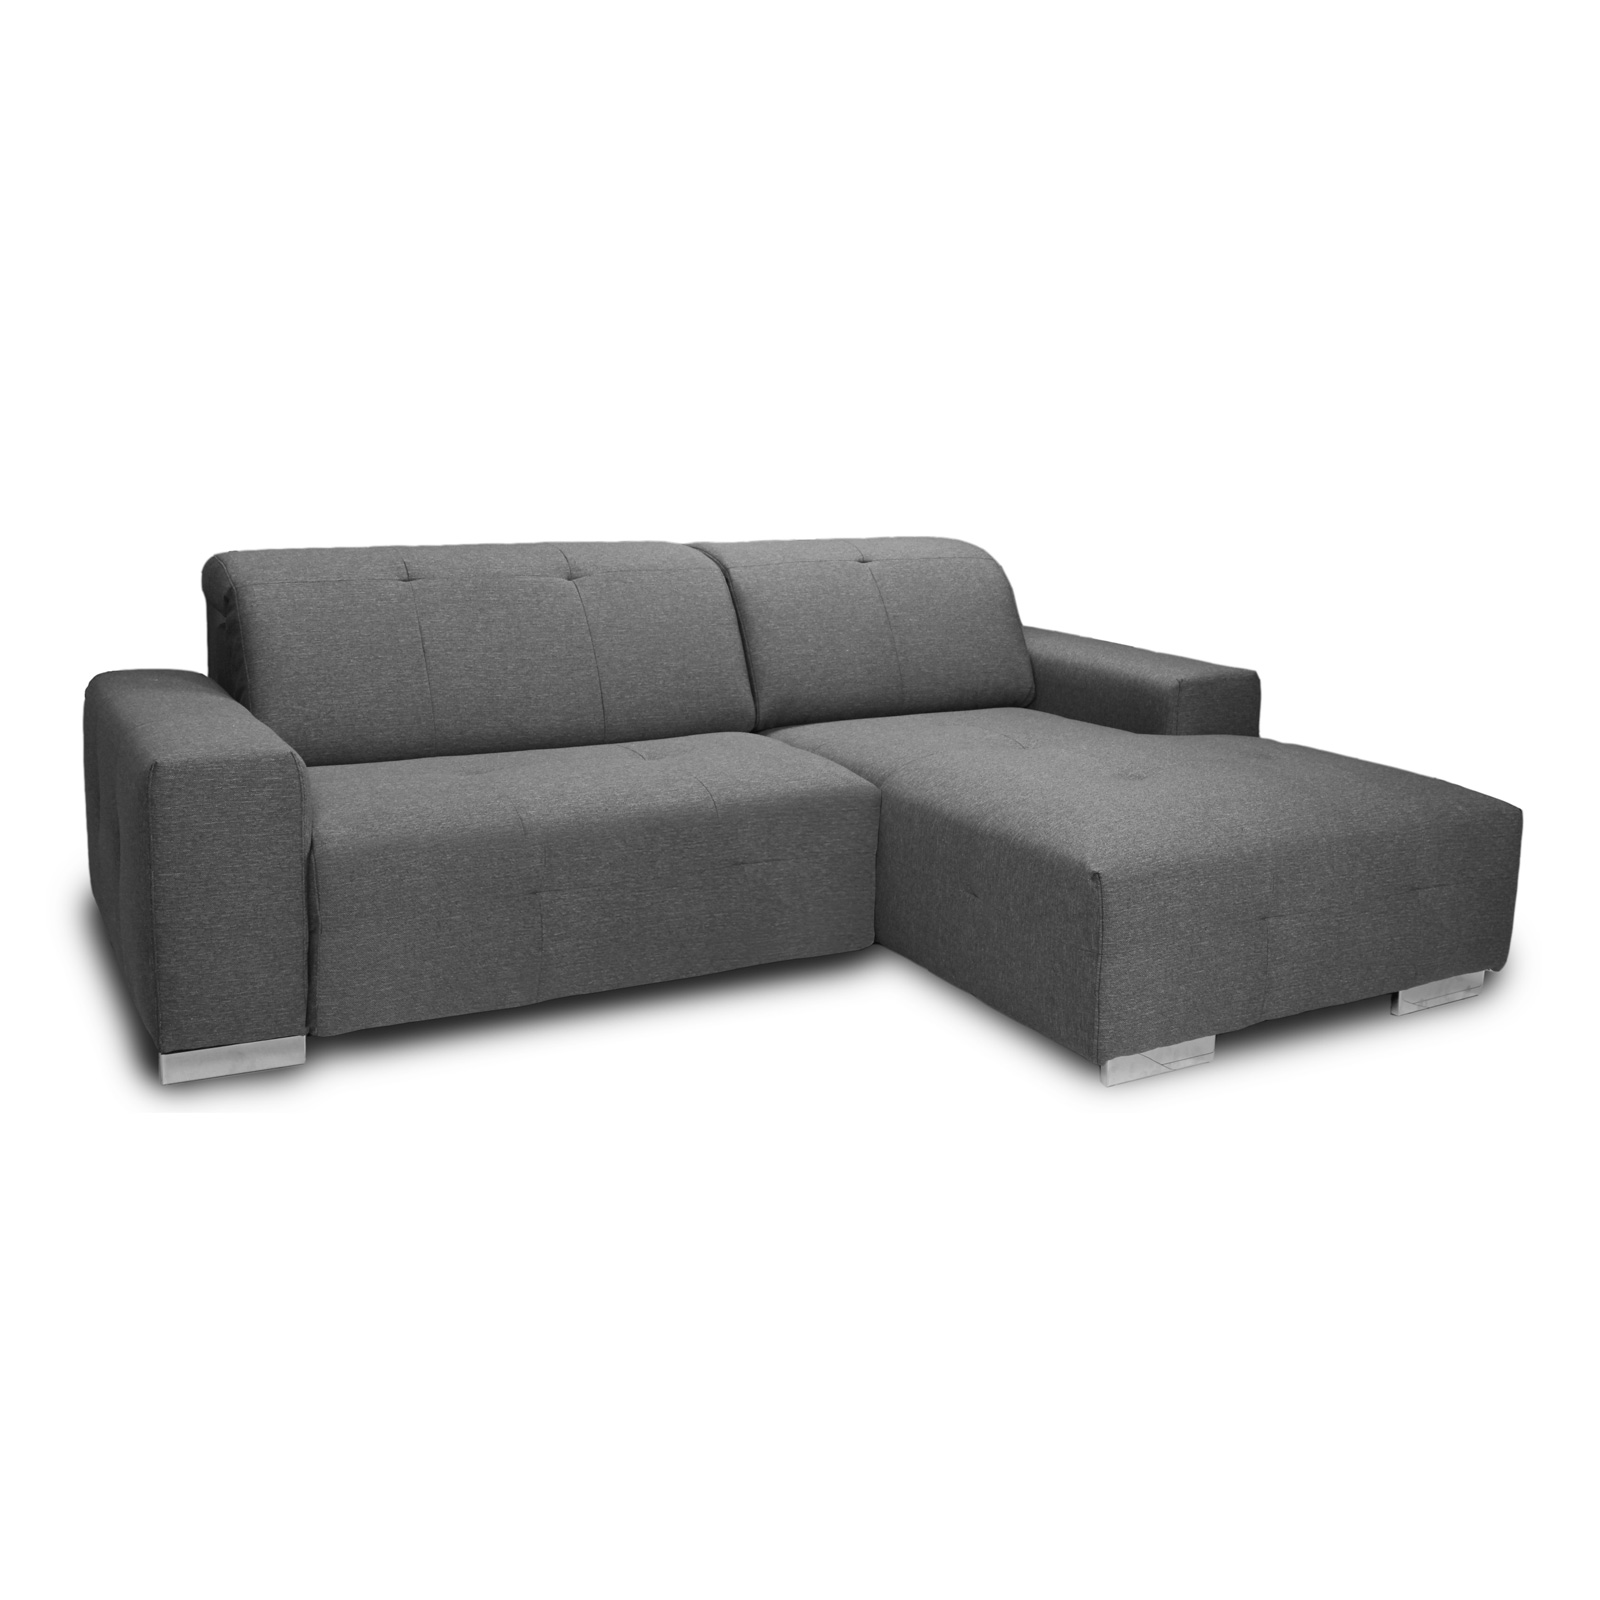 ecksofa francisco sofa polsterecke wohnlandschaft mit auswahl ebay. Black Bedroom Furniture Sets. Home Design Ideas